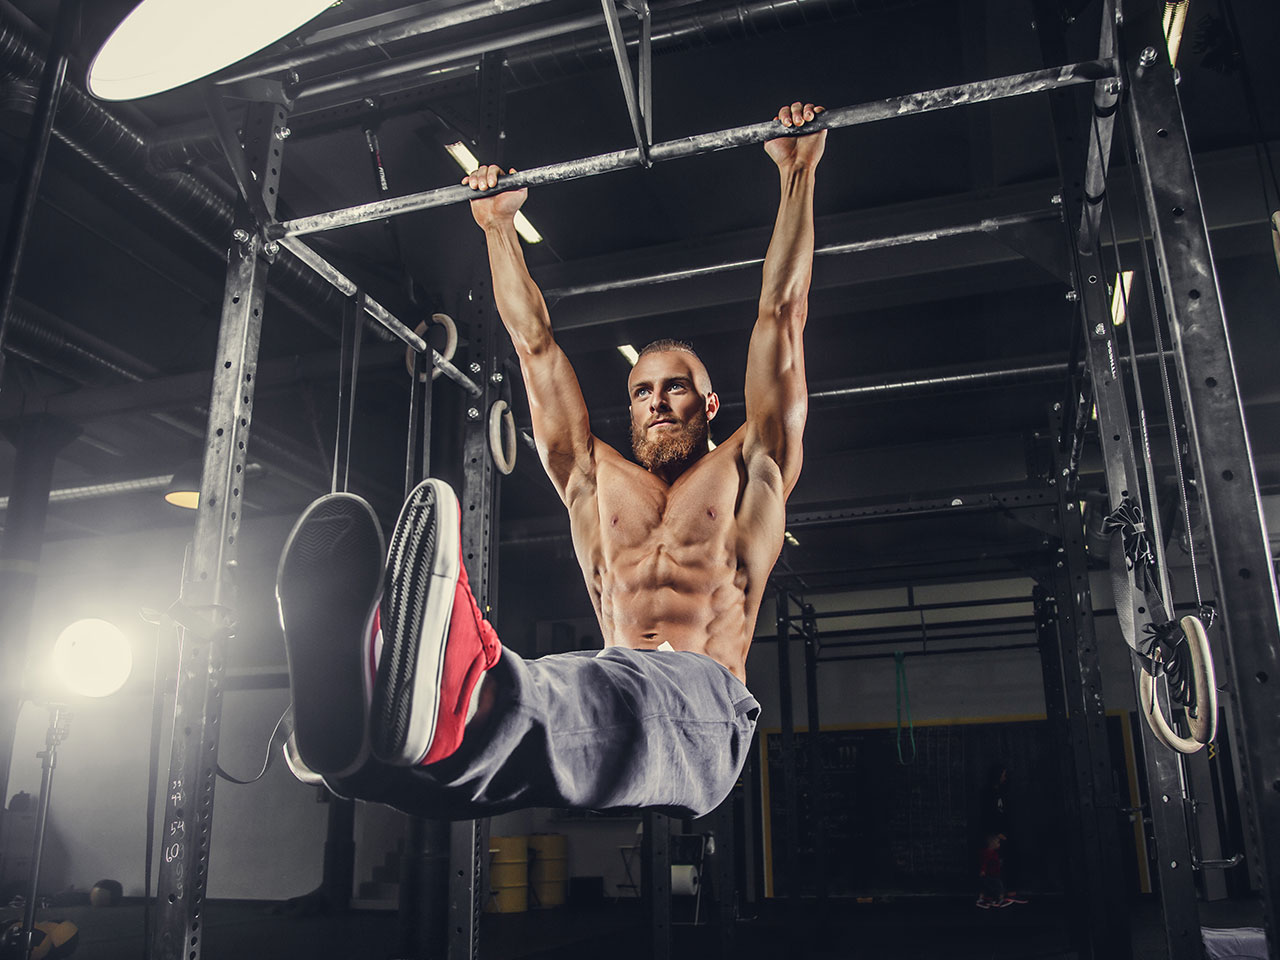 The chest workout that'll crank up your torso without weights